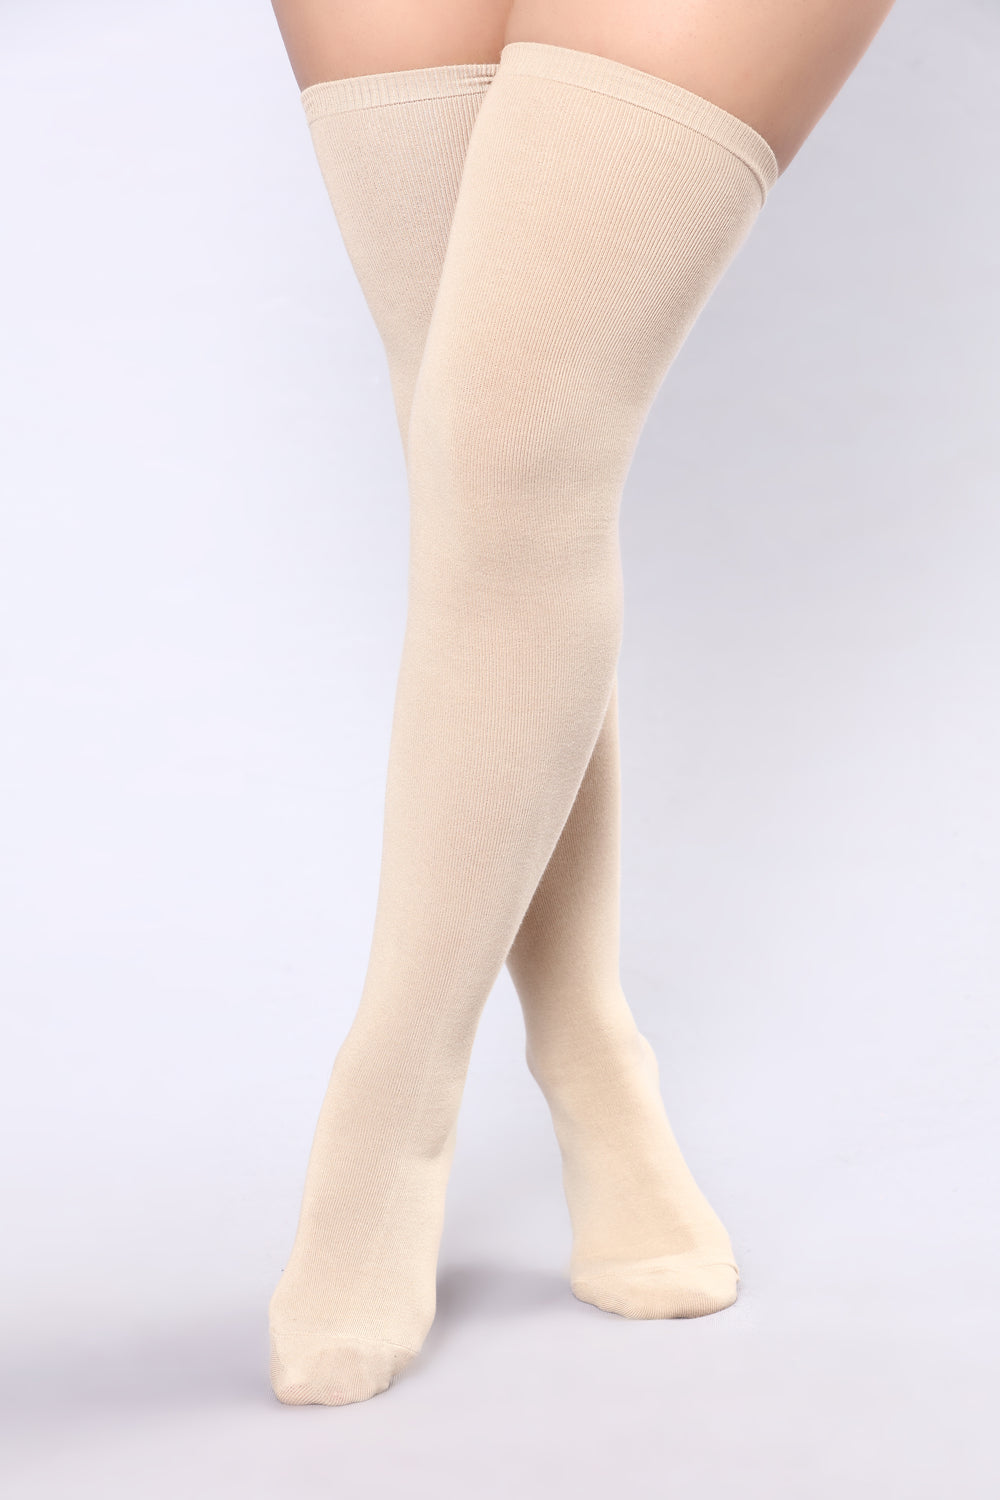 Say Bye Over The Knee Socks - Beige